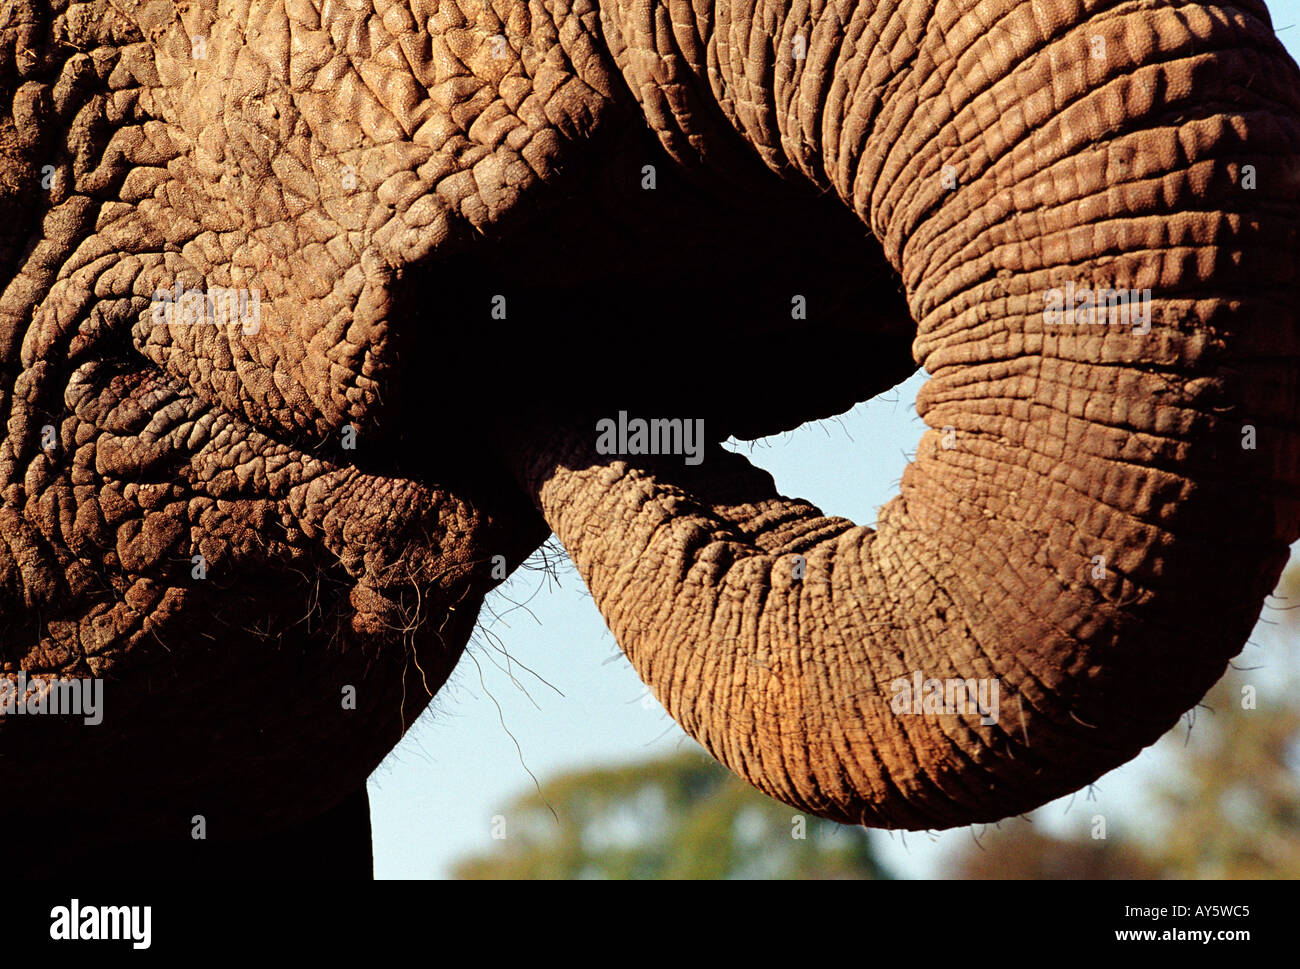 Close-up of Elephant trunk and mouth while drinking water Proboscis ...